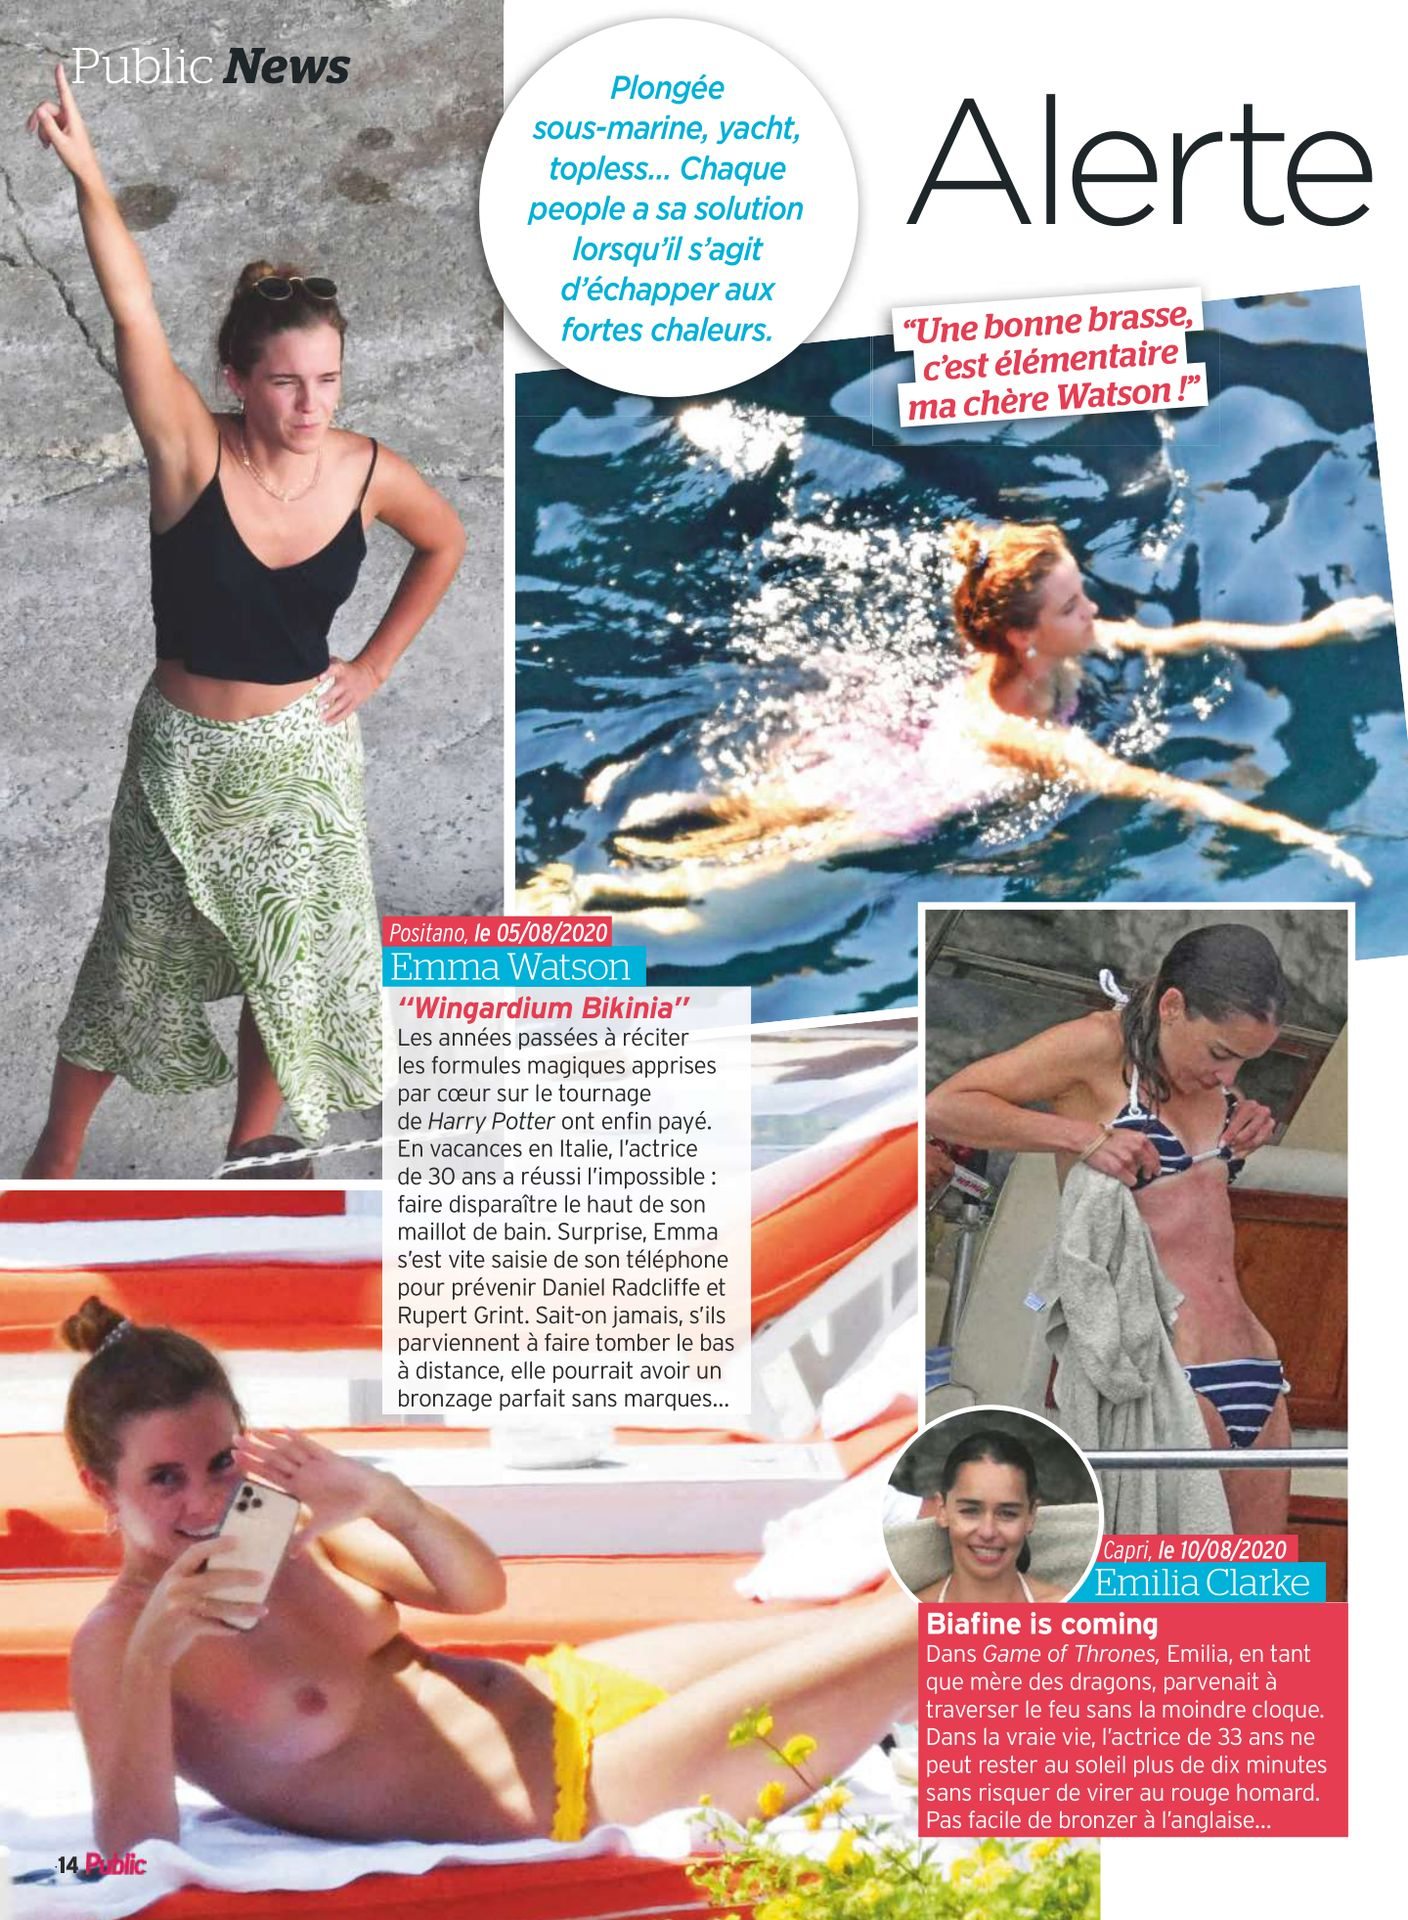 Emma Watson's Nude Leak From Her Holiday In Italy 0002